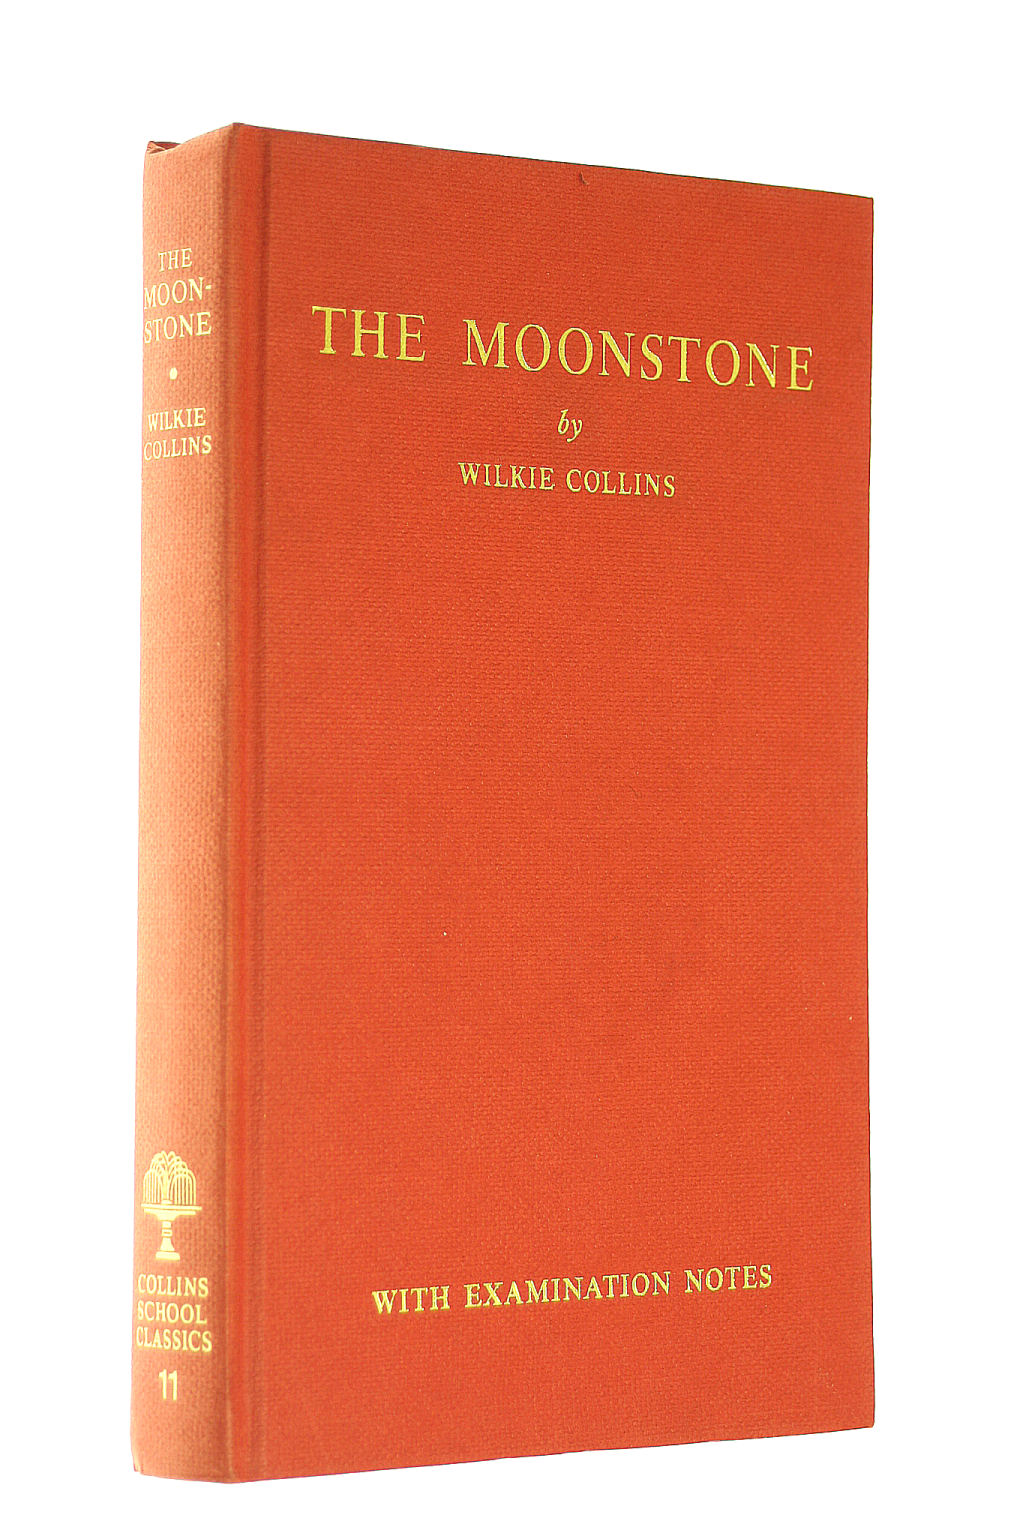 Image for The Moonstone (With Examination Notes) [Collins Schools Classics 11]